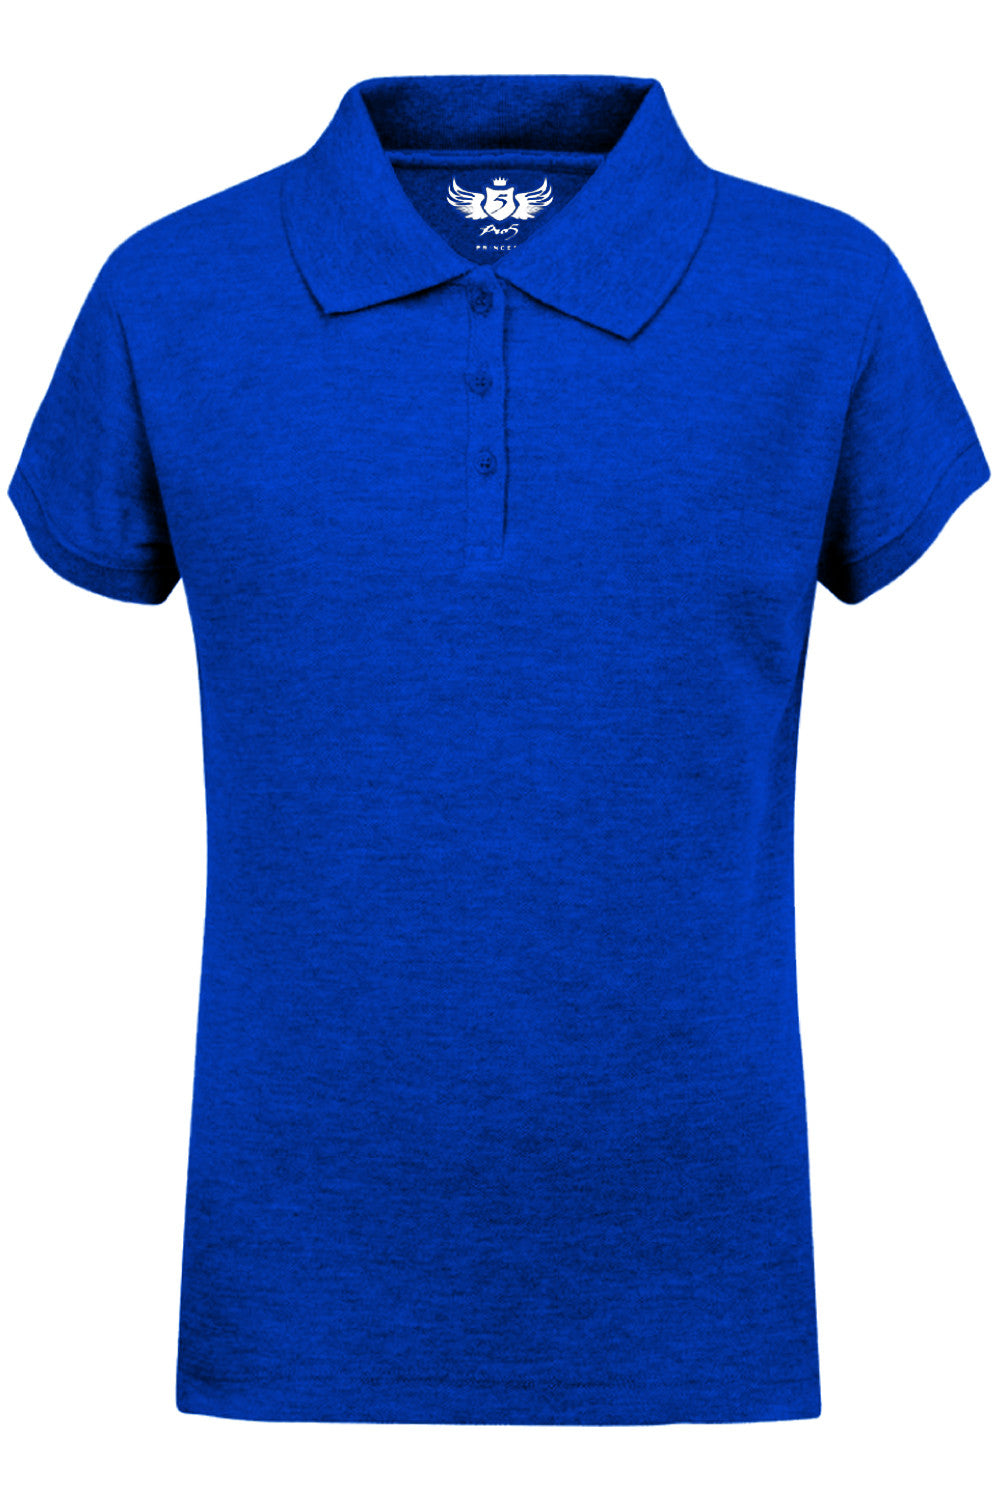 Girls Polo Top Kids School Uniform Royal Blue